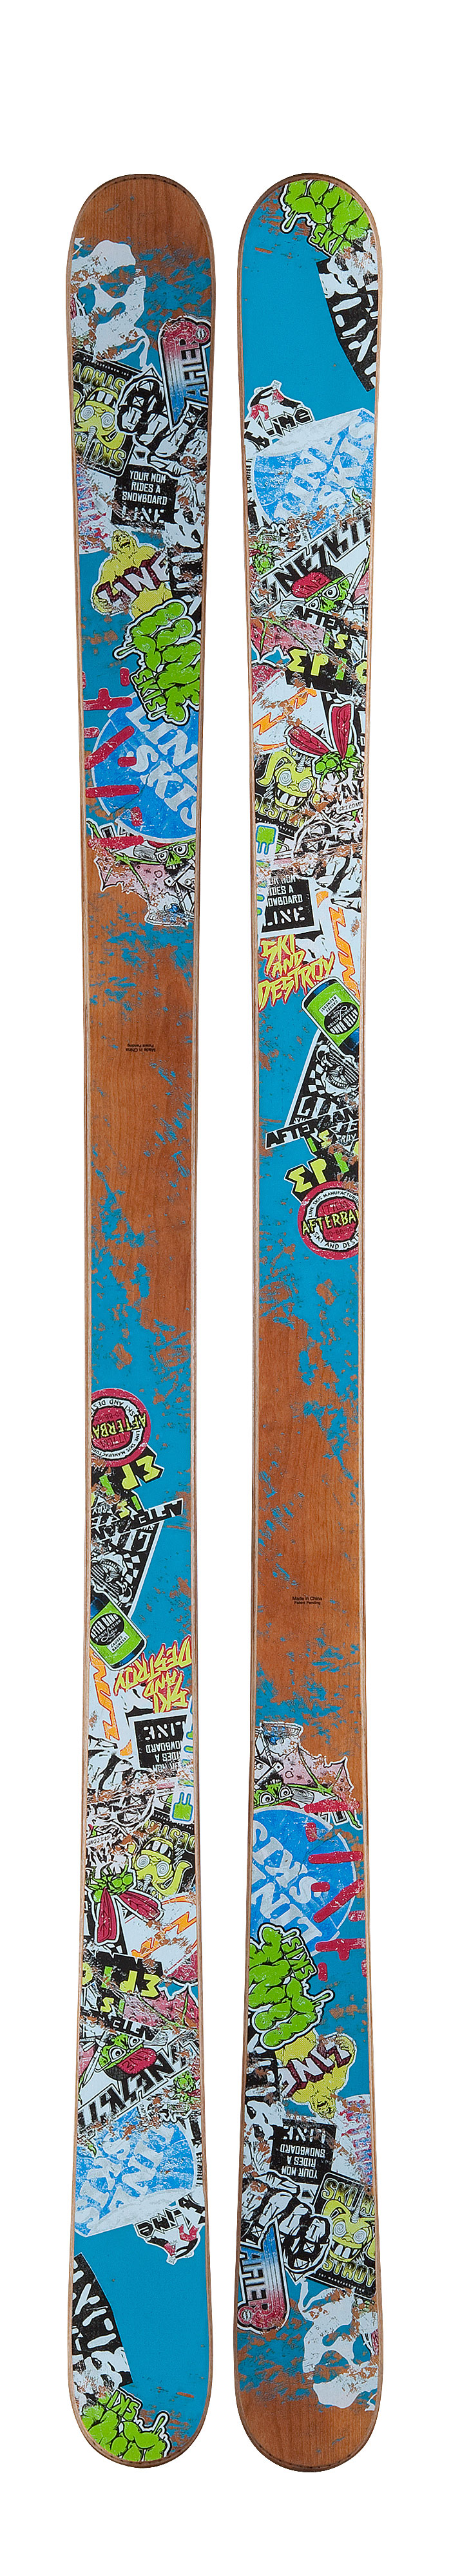 Ski The only ski built like a skateboard The Afterbang is every jibber's #1 choice for creative, buttery, jibtastic good times. Its playful flex pattern provides ninja-like control when buttering & pressing with tons of extra pop for ollieing & nollieing over snowboarders. Backed by a patented skateboard construction for durability, this is the ski that gives our pros and you, the creative advantage no other ski can. Key Features of the Line Afterbang Skis: Skate Deck Butterzones Carbon Ollieband Symmetric Fivecut Fatty Base & Edge Symmetric Flex Shape mm: 115-88-115 Profile mm: 0-4-0 (Tip Early Rise/Camber/Tail Early Rise) Sidecut m: 18.0 Stance mm: 0 (centered) Tip/Tail mm: 52/52 - $349.95